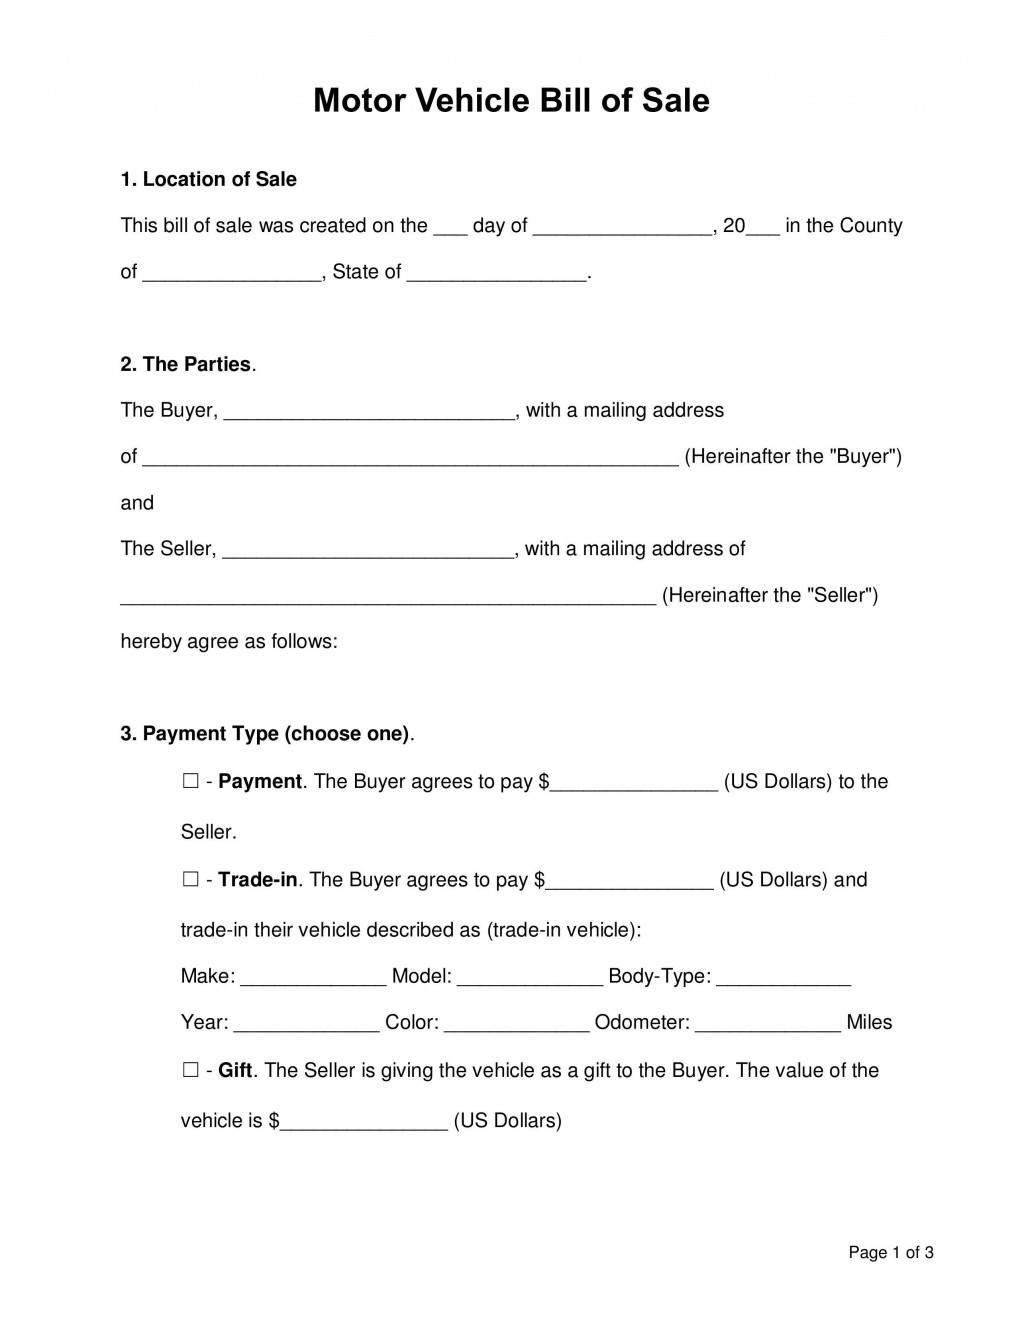 000 Staggering Template For Bill Of Sale Photo  Example Trailer Free Mobile Home Used CarLarge